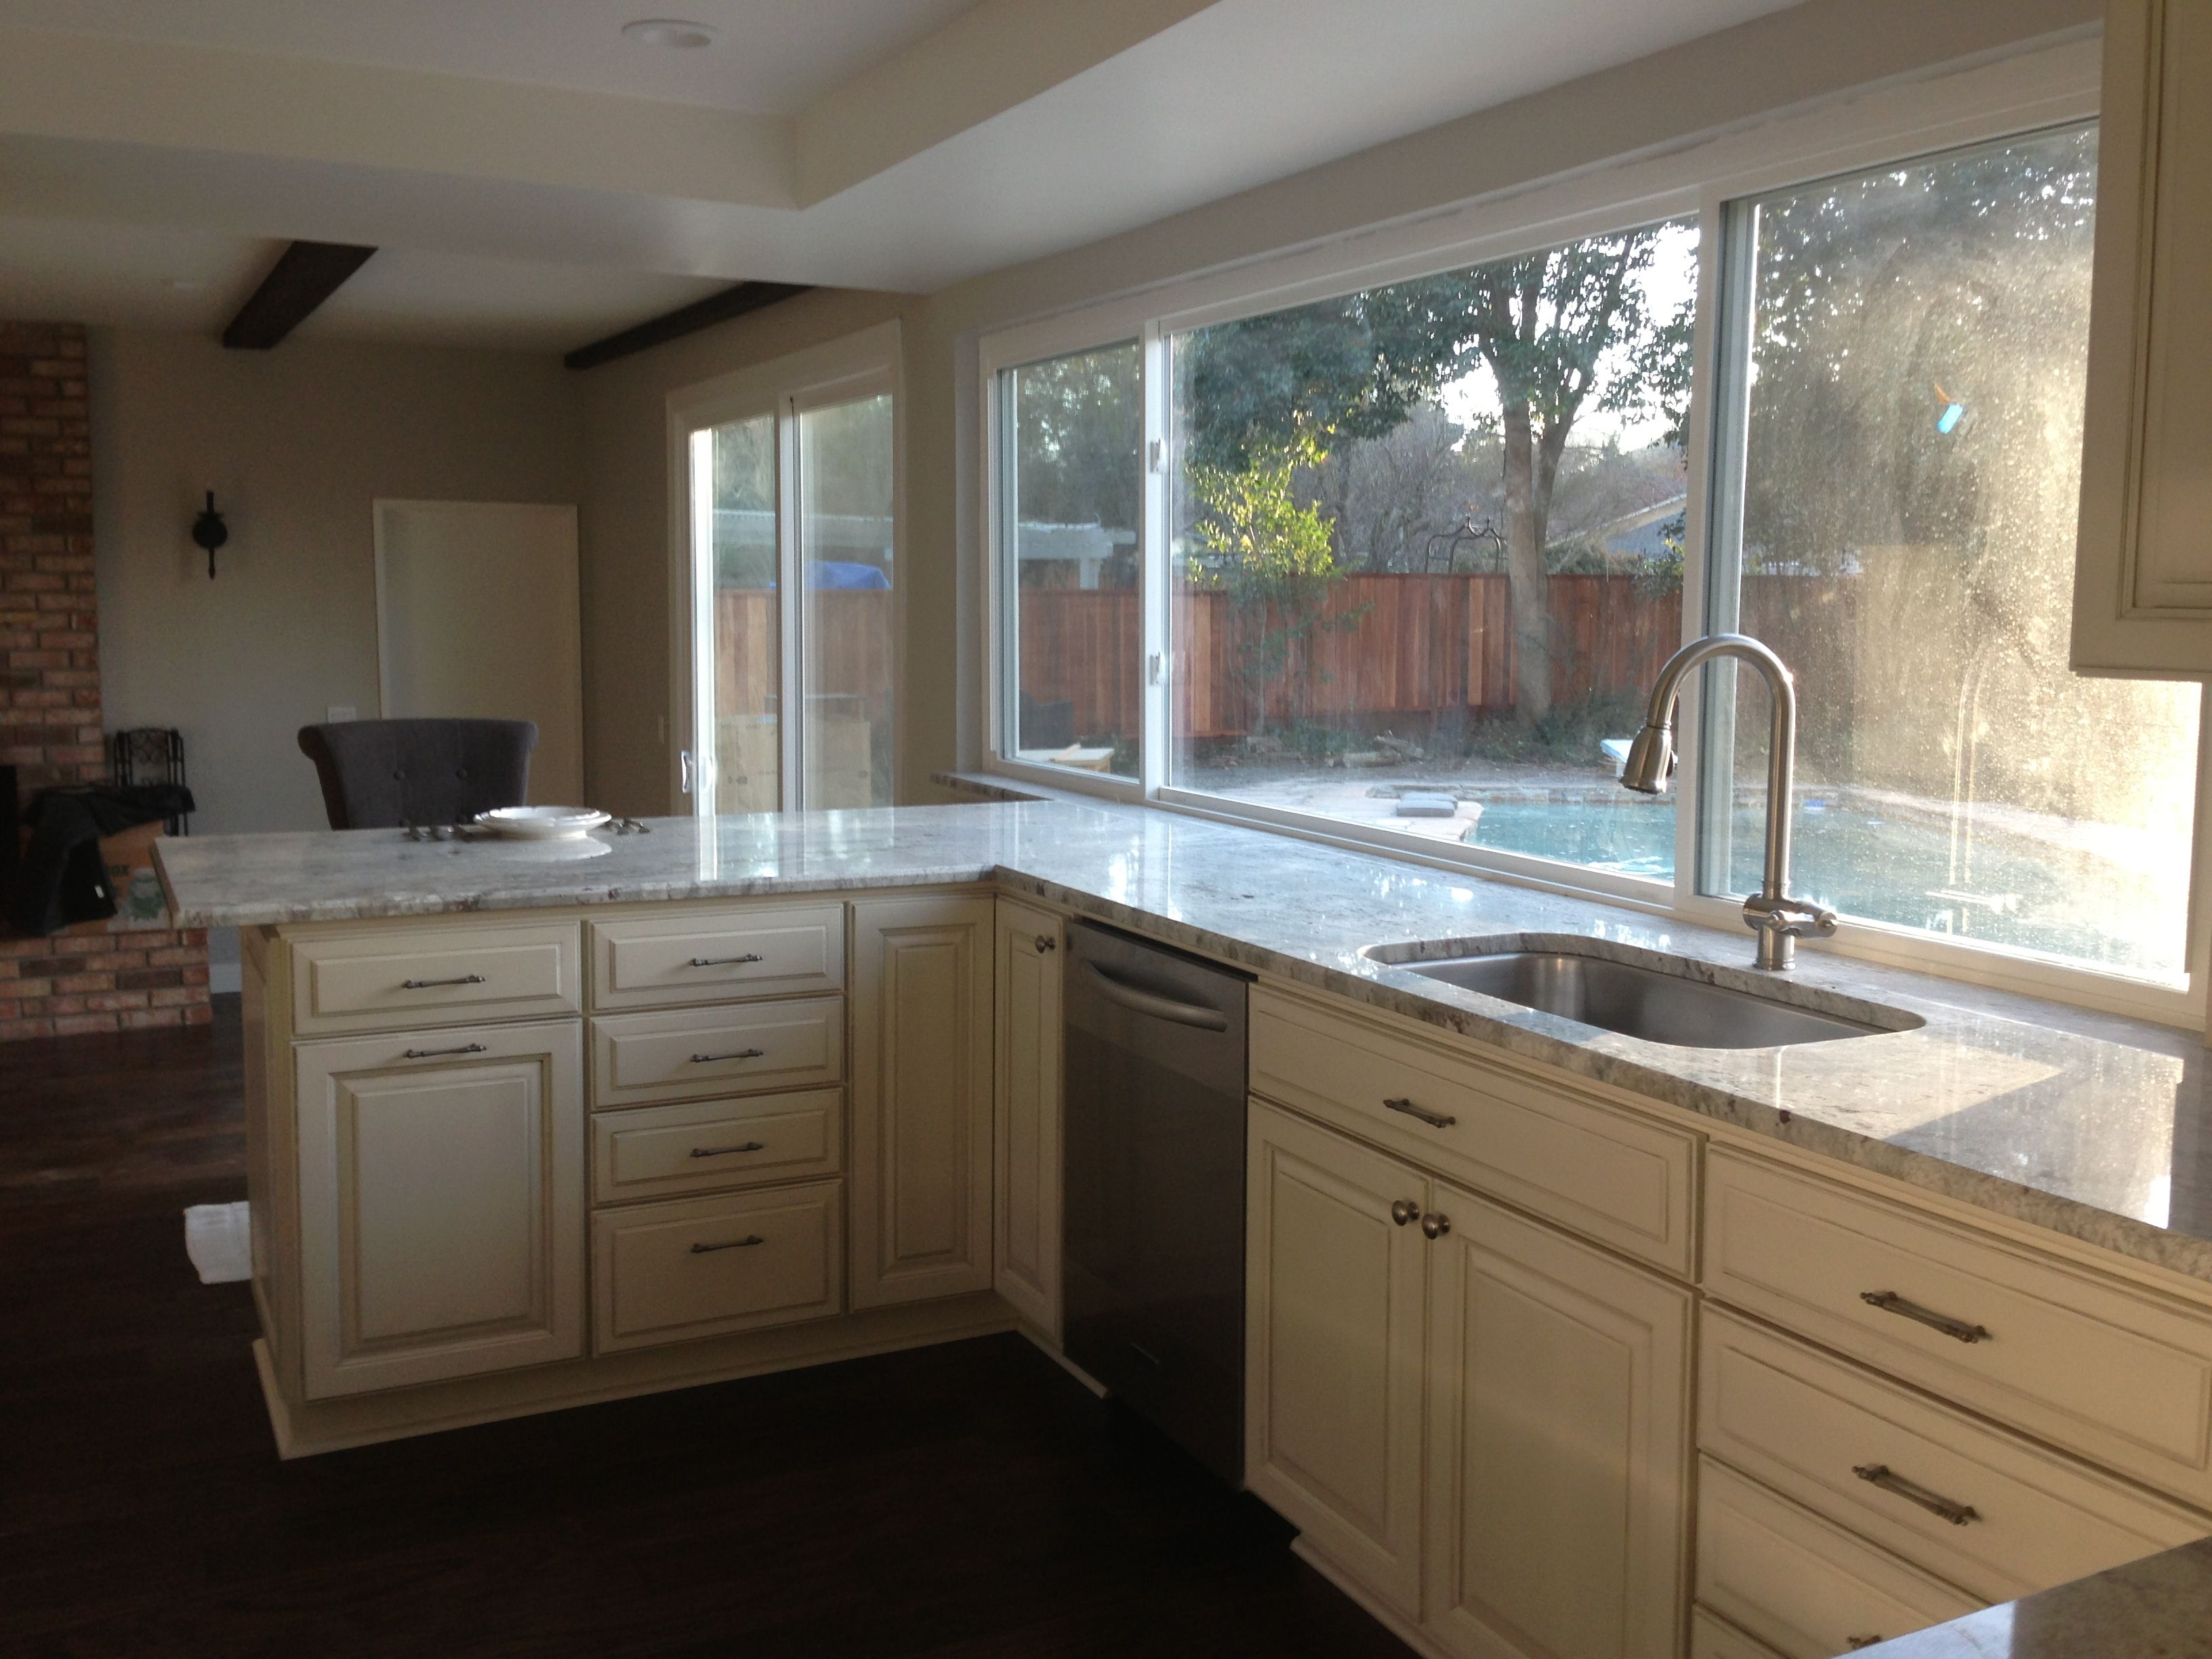 Our cabinets Thomasville creme with carrera glaze